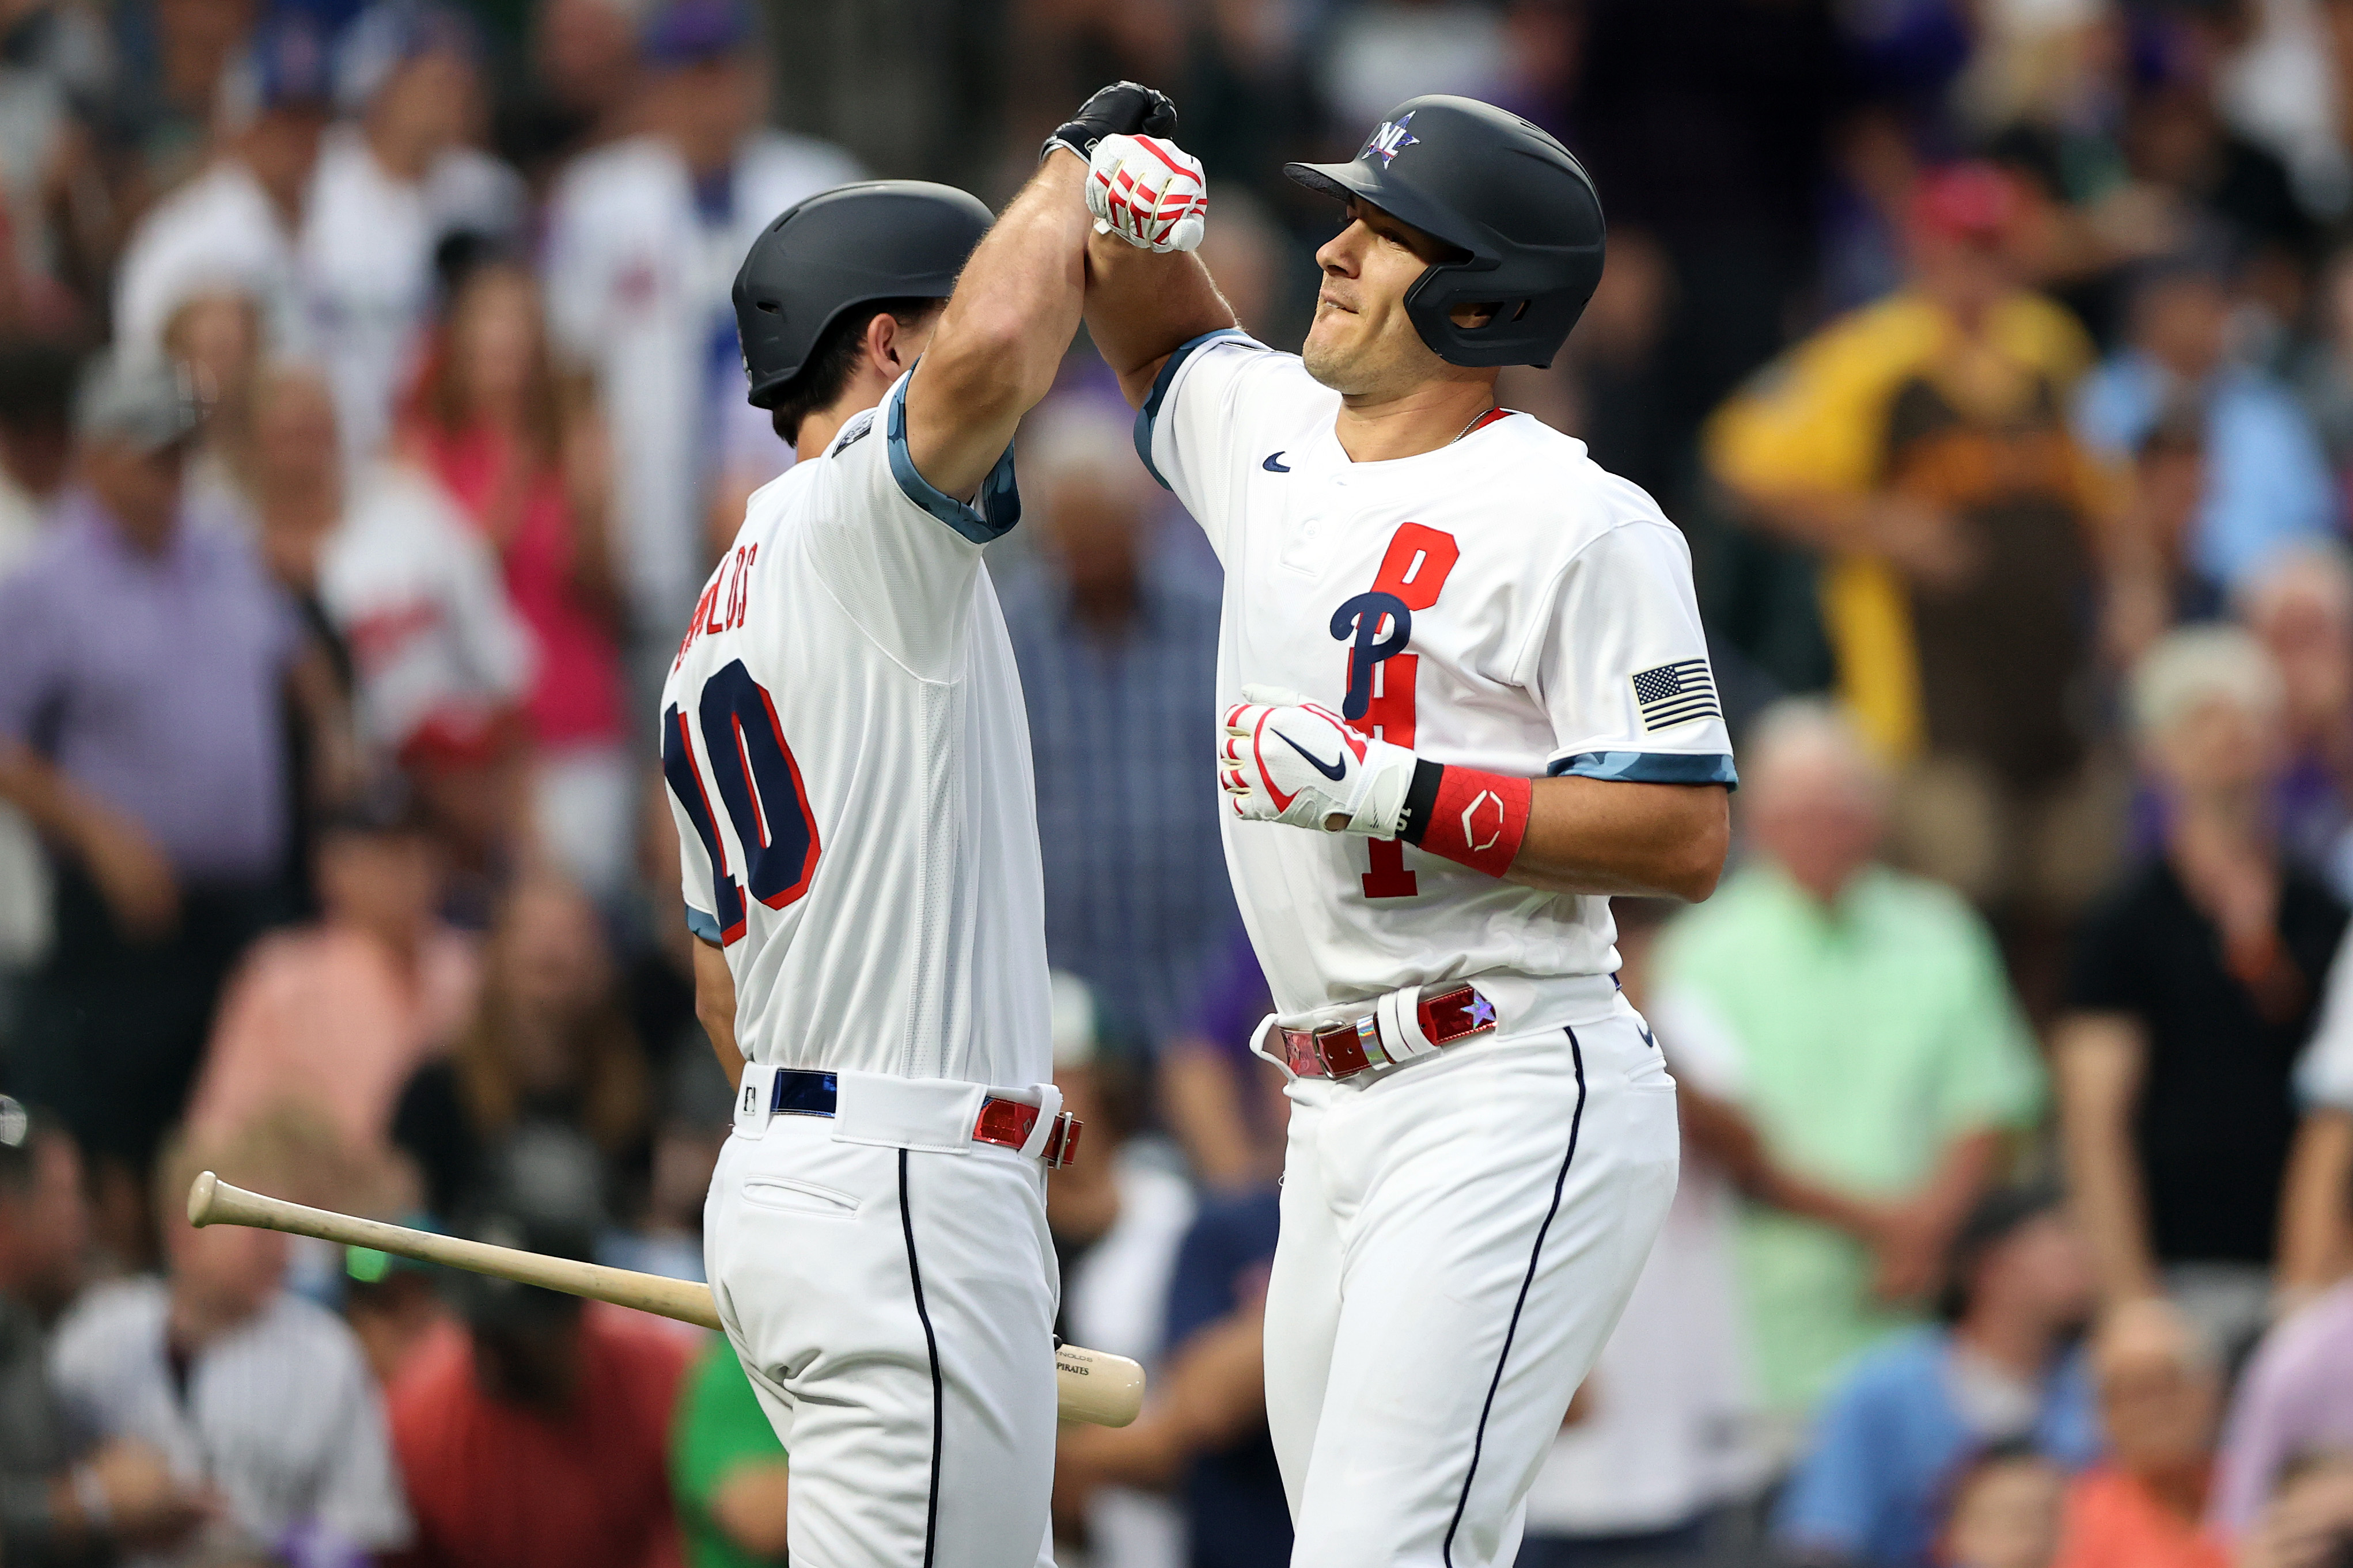 J.T. Realmuto #10 of the Philadelphia Phillies celebrates Bryan Reynolds #10 of the Pittsburgh Pirates with after hitting a home run in the fifth inning during the 91st MLB All-Star Game at Coors Field